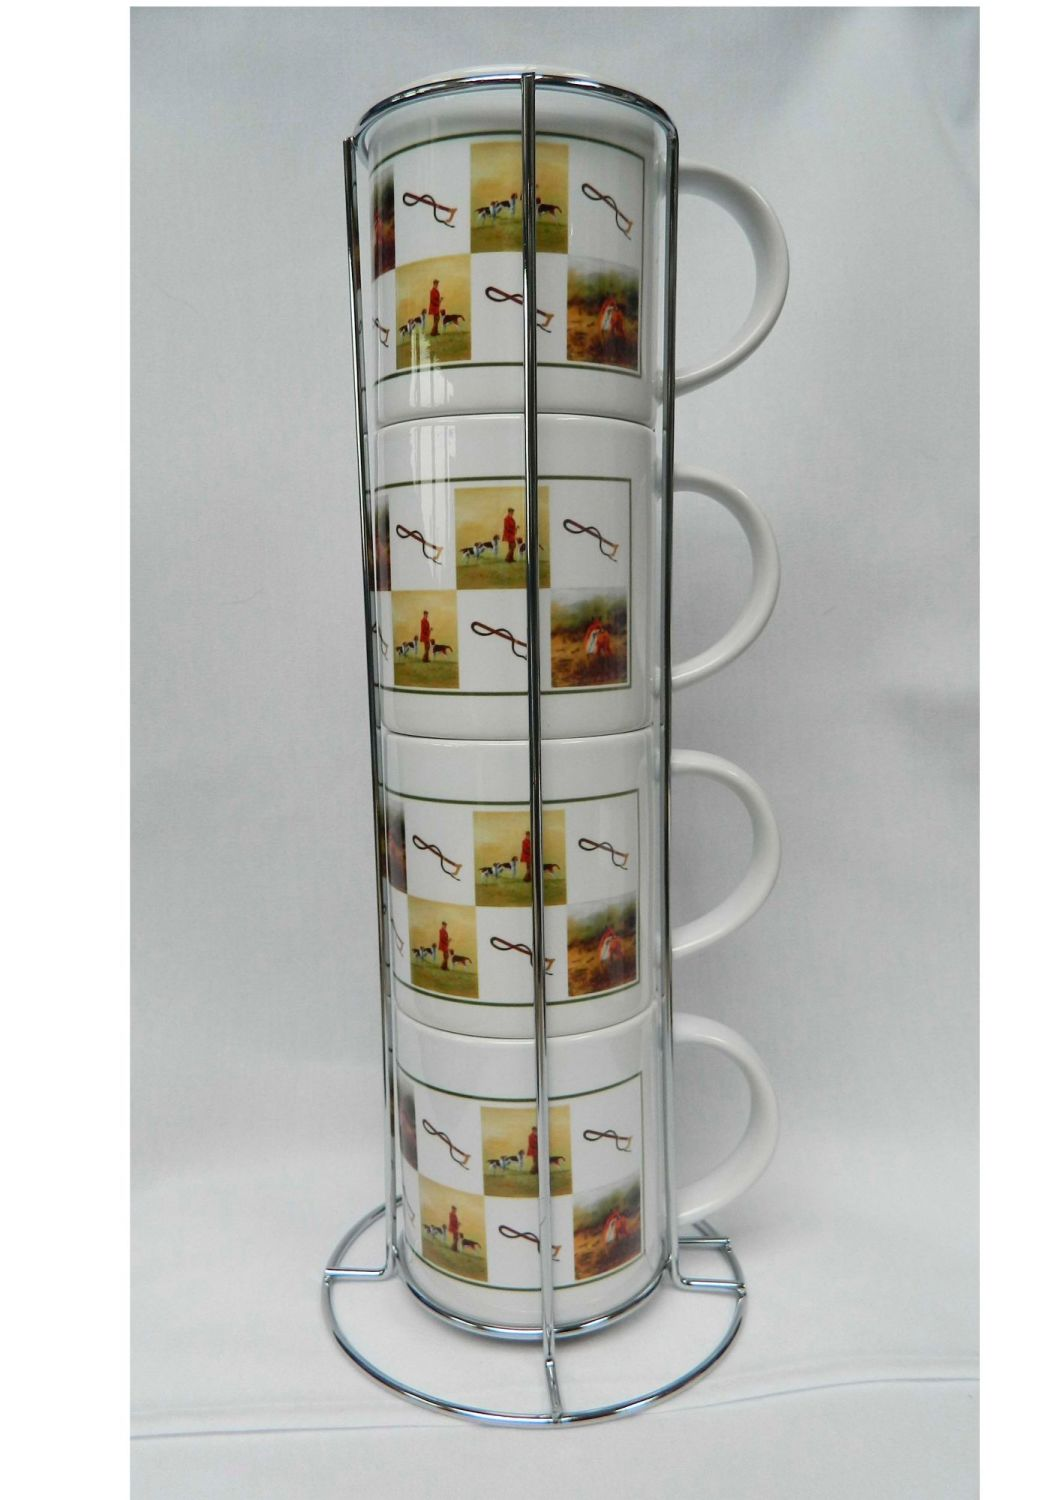 New Product Hunting stacking mugs